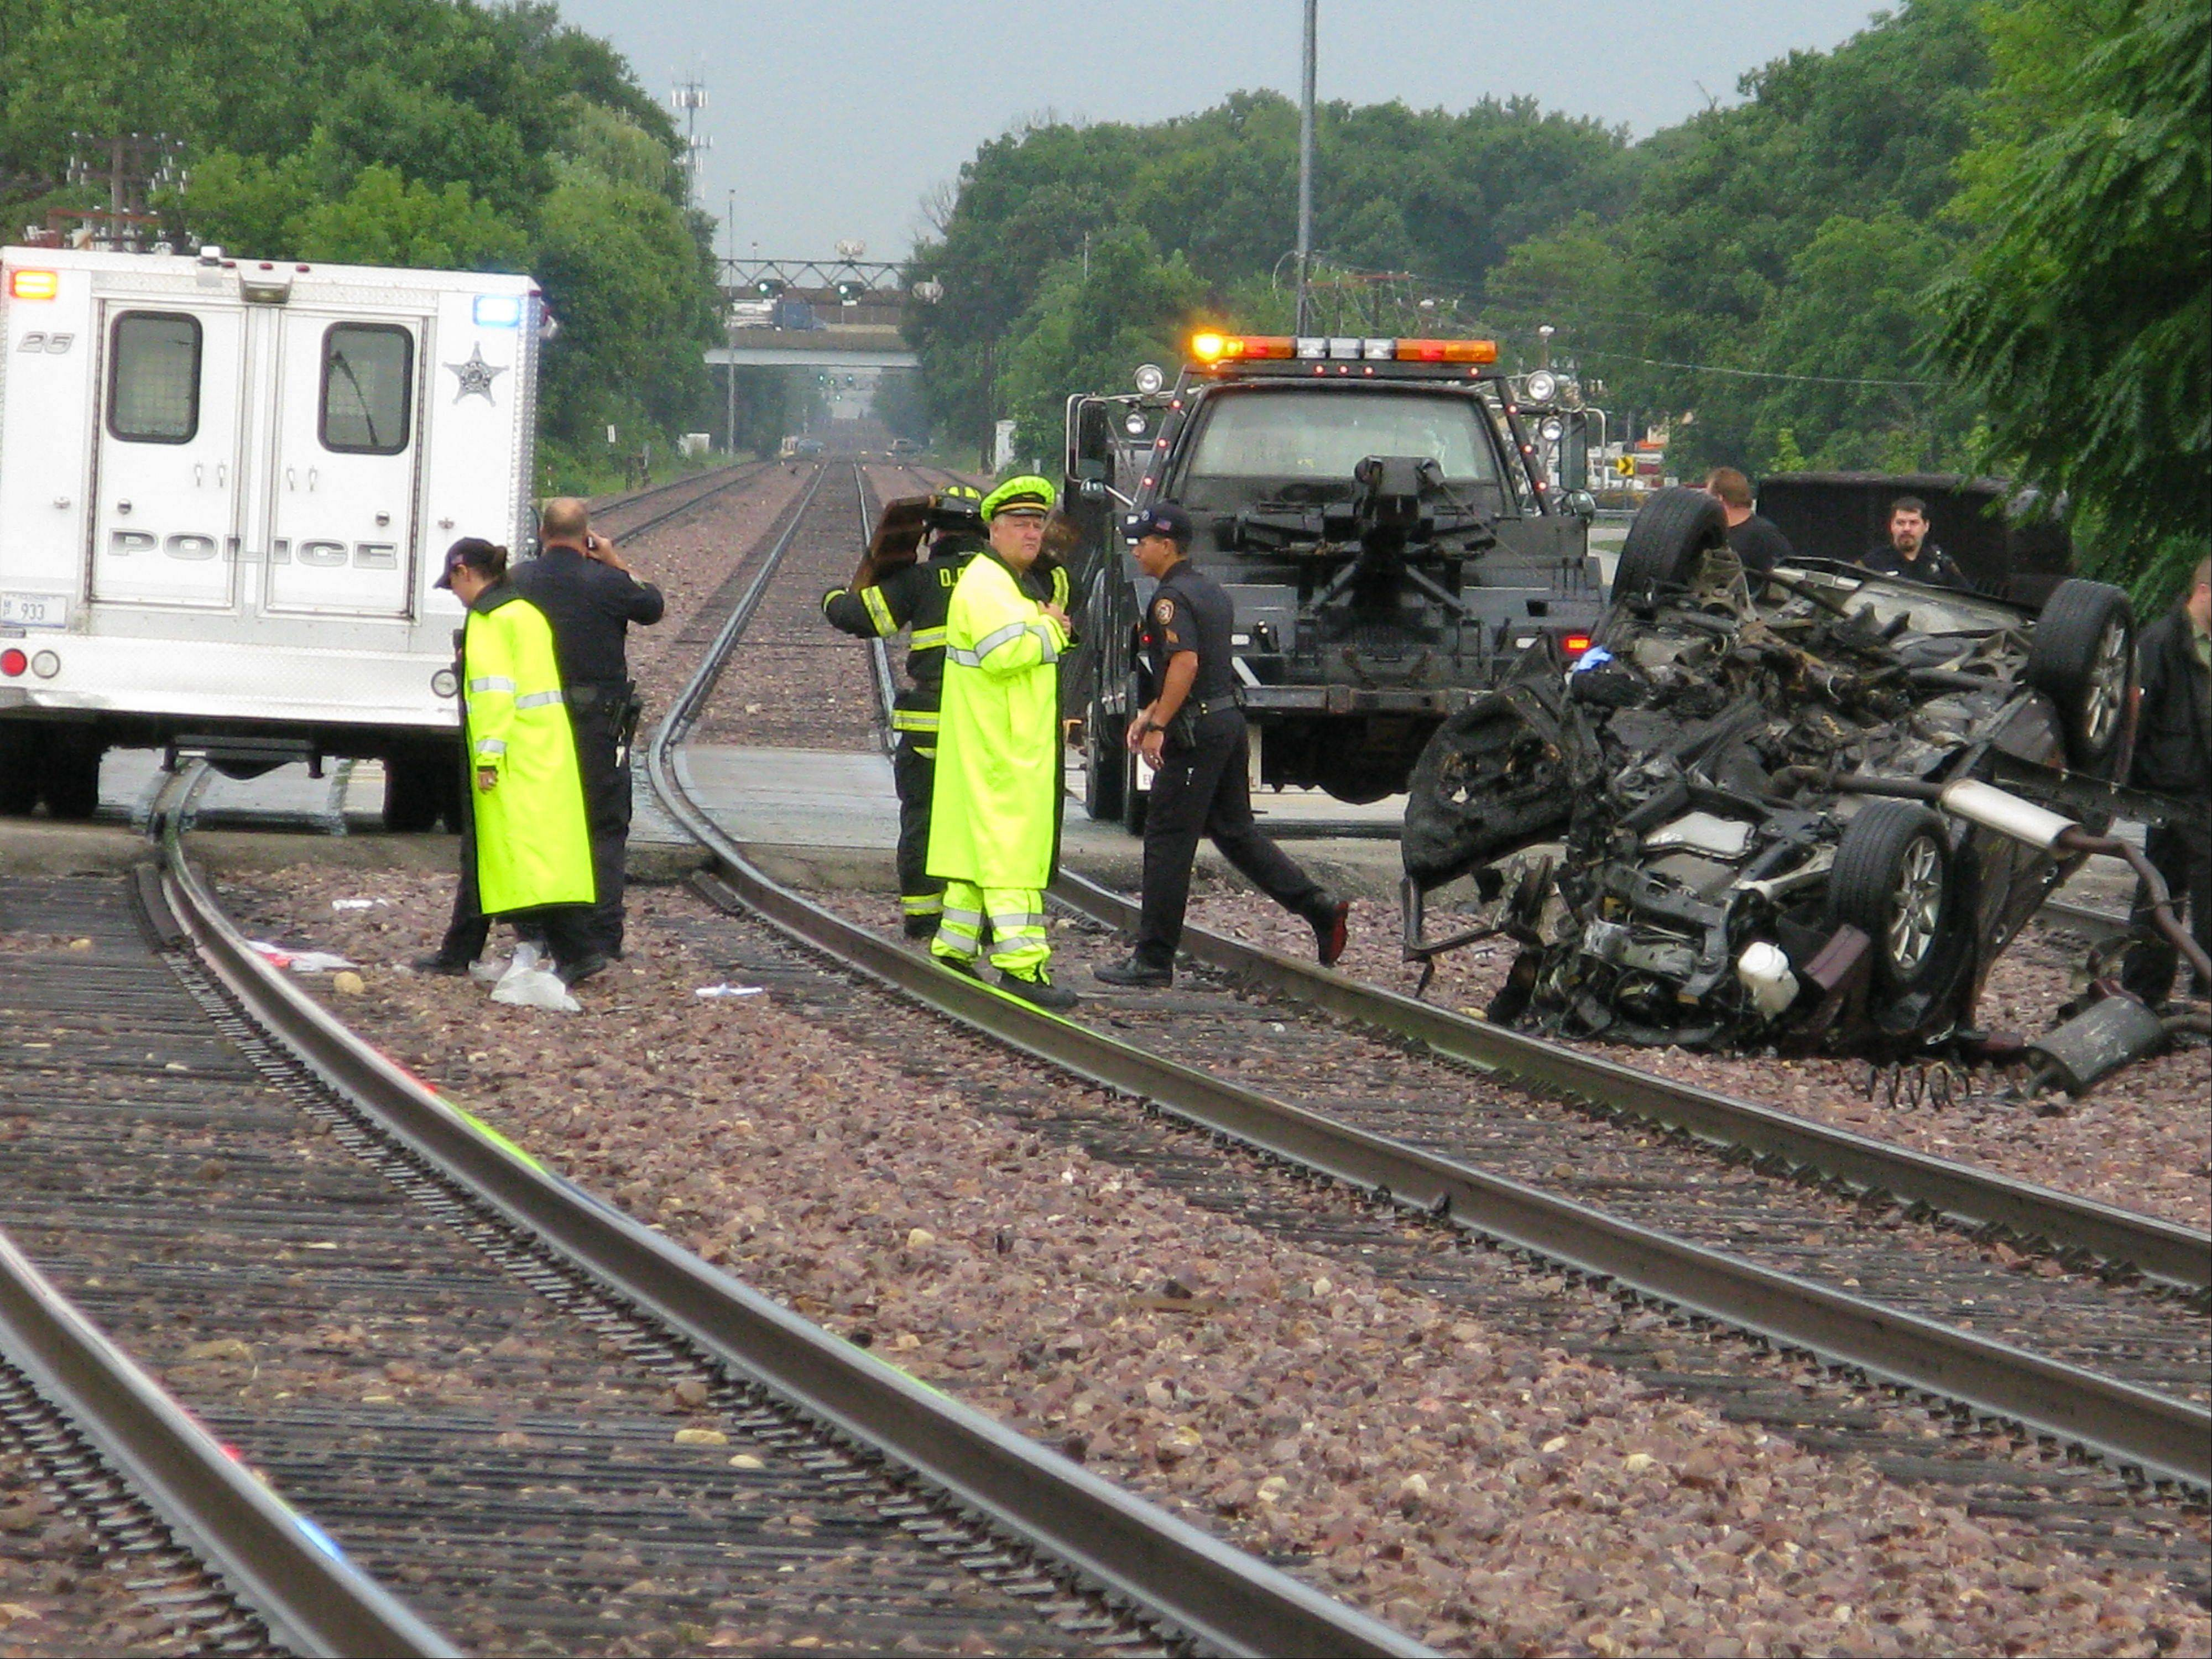 Daily Herald file photo Accidents like this August 2010 fatal collision with a car and Metra train in Des Plaines can be prevented, experts say.